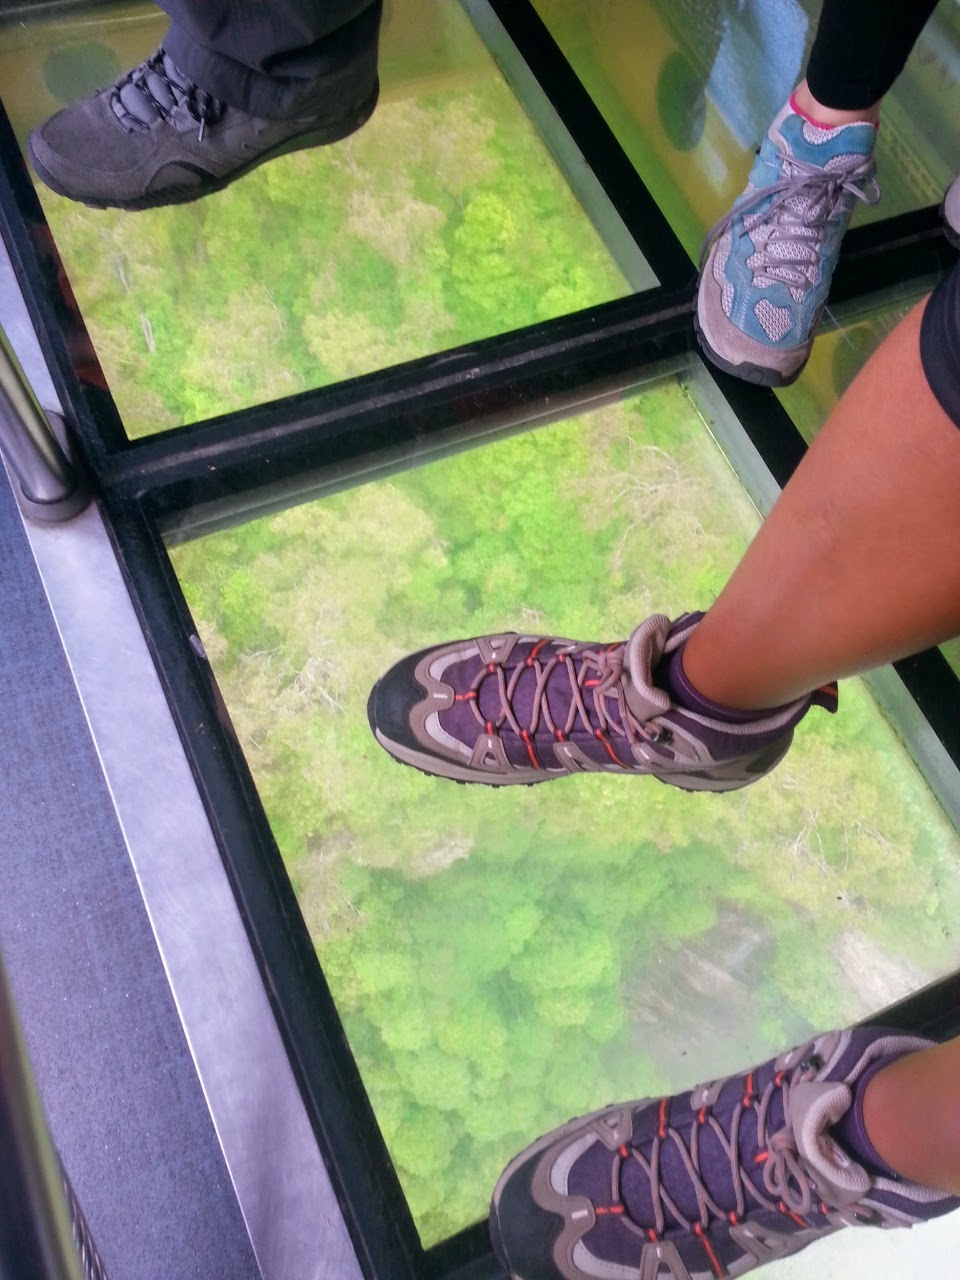 Anyway, part of the appeal lies with the glass floor which is highly  dependant on clear weather. If it mists up, you probably won't get to see  the treetops.